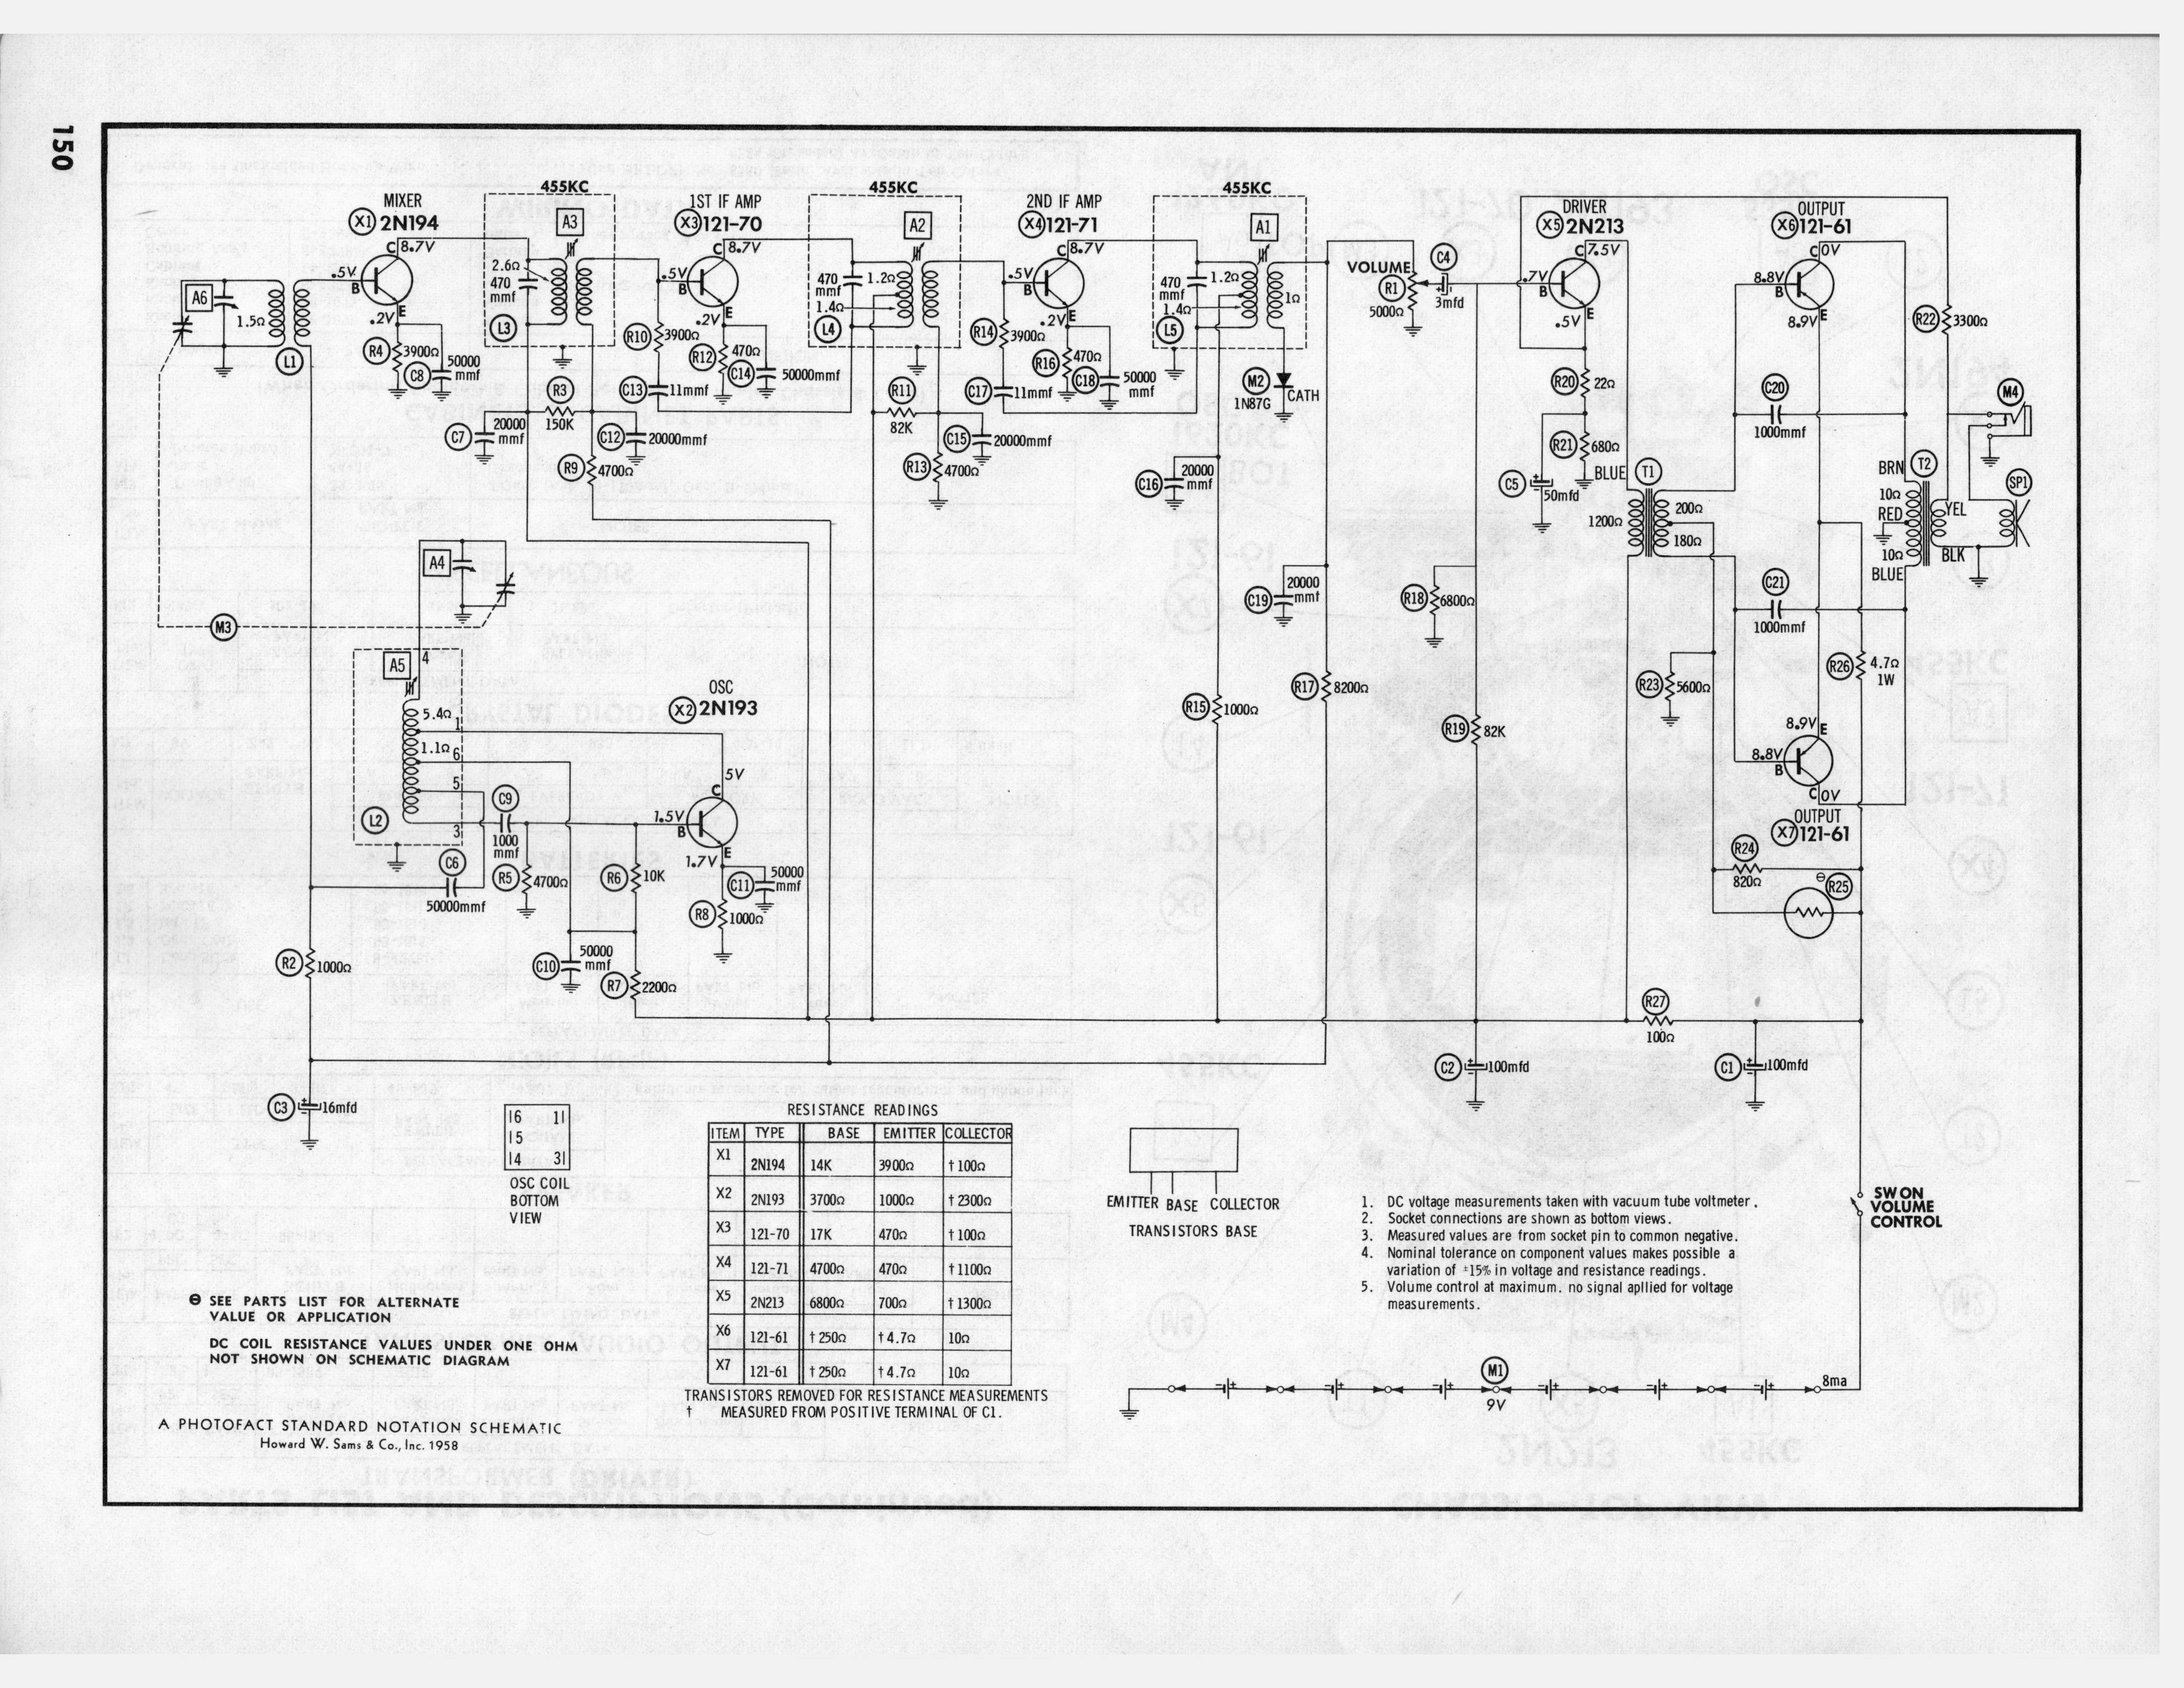 Service Manual Schematics as well Schematics also ZXhjYXZhdG9yLWh5ZHJhdWxpYy1zY2hlbWF0aWM additionally Jay Turser Telecaster Wiring Diagram together with All About Wiring Diagram Fender Guitar Manual Wiring. on korg wiring diagram